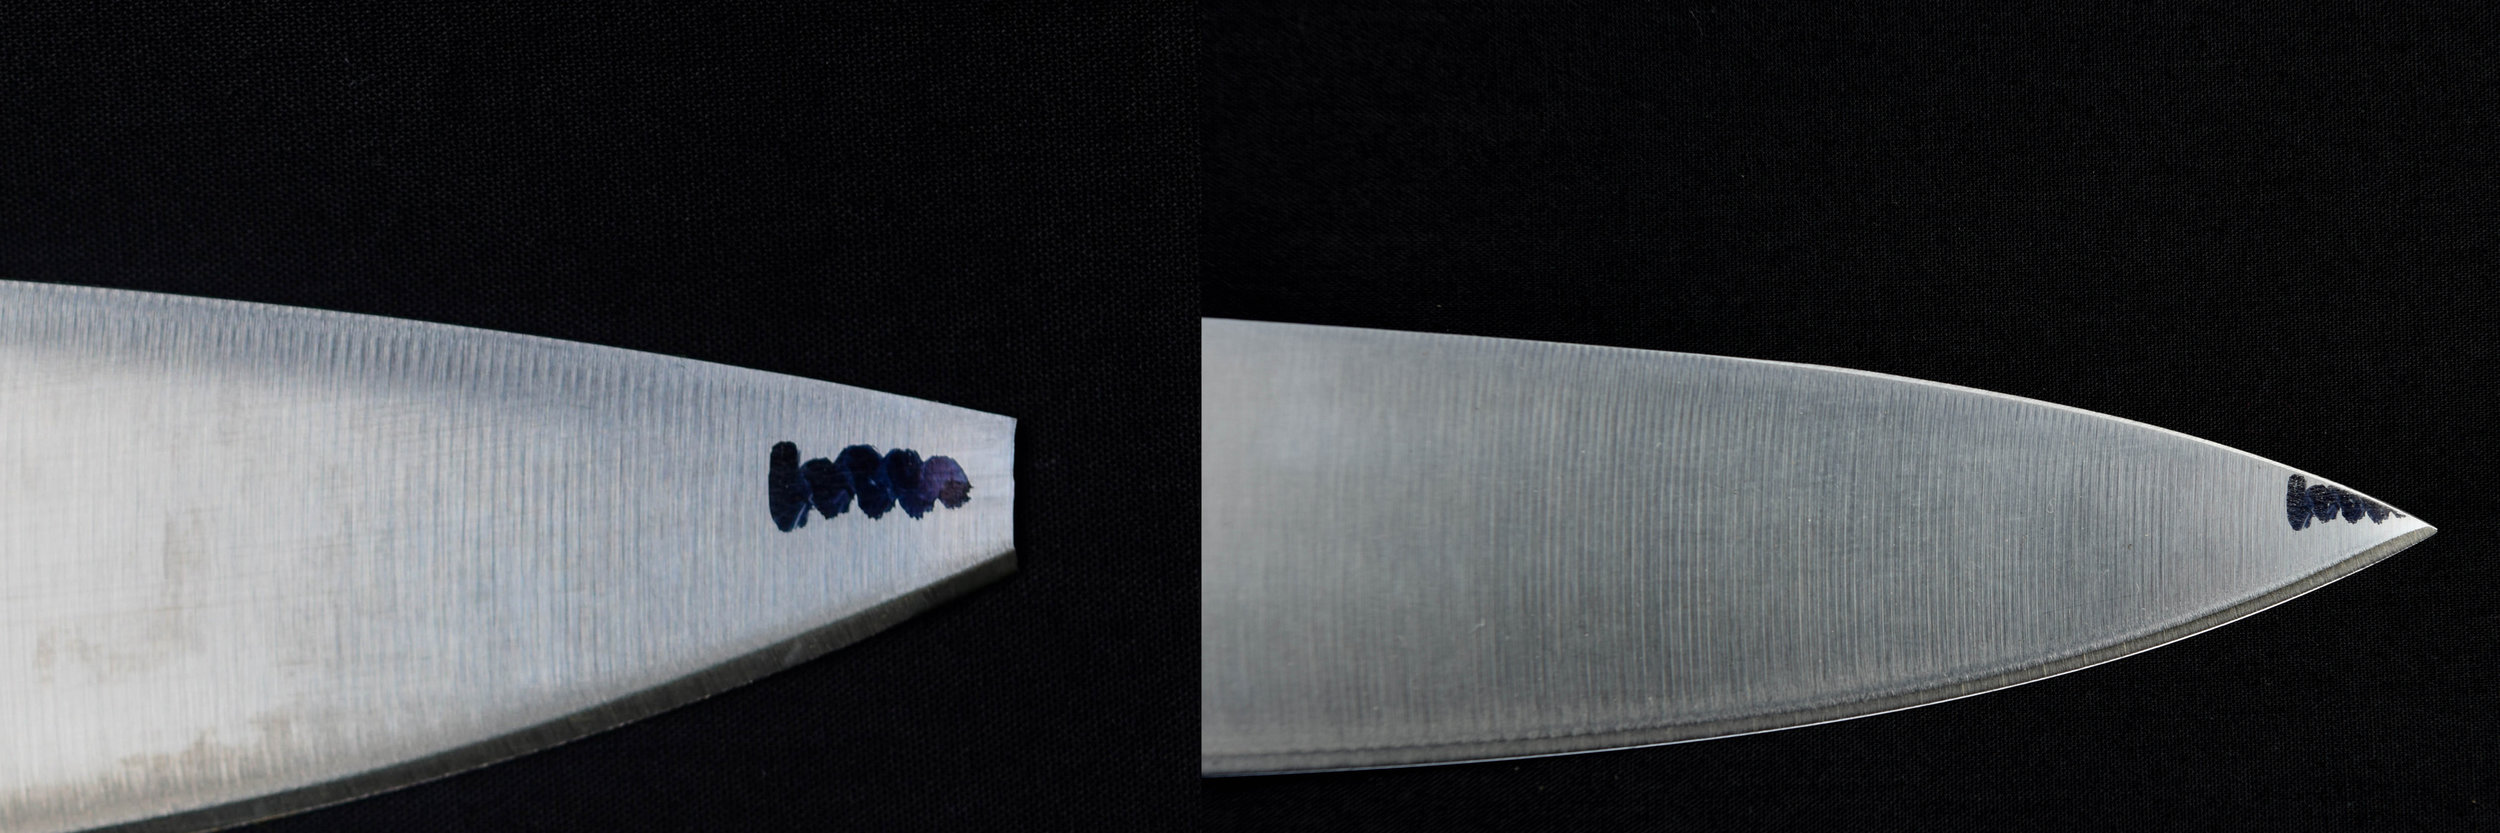 Repairing the broken tip on a kitchen knife. this is achieved by removing material mostly from the spine (top -edge) of the blade in order to preserve the thinner material on the cutting edge.